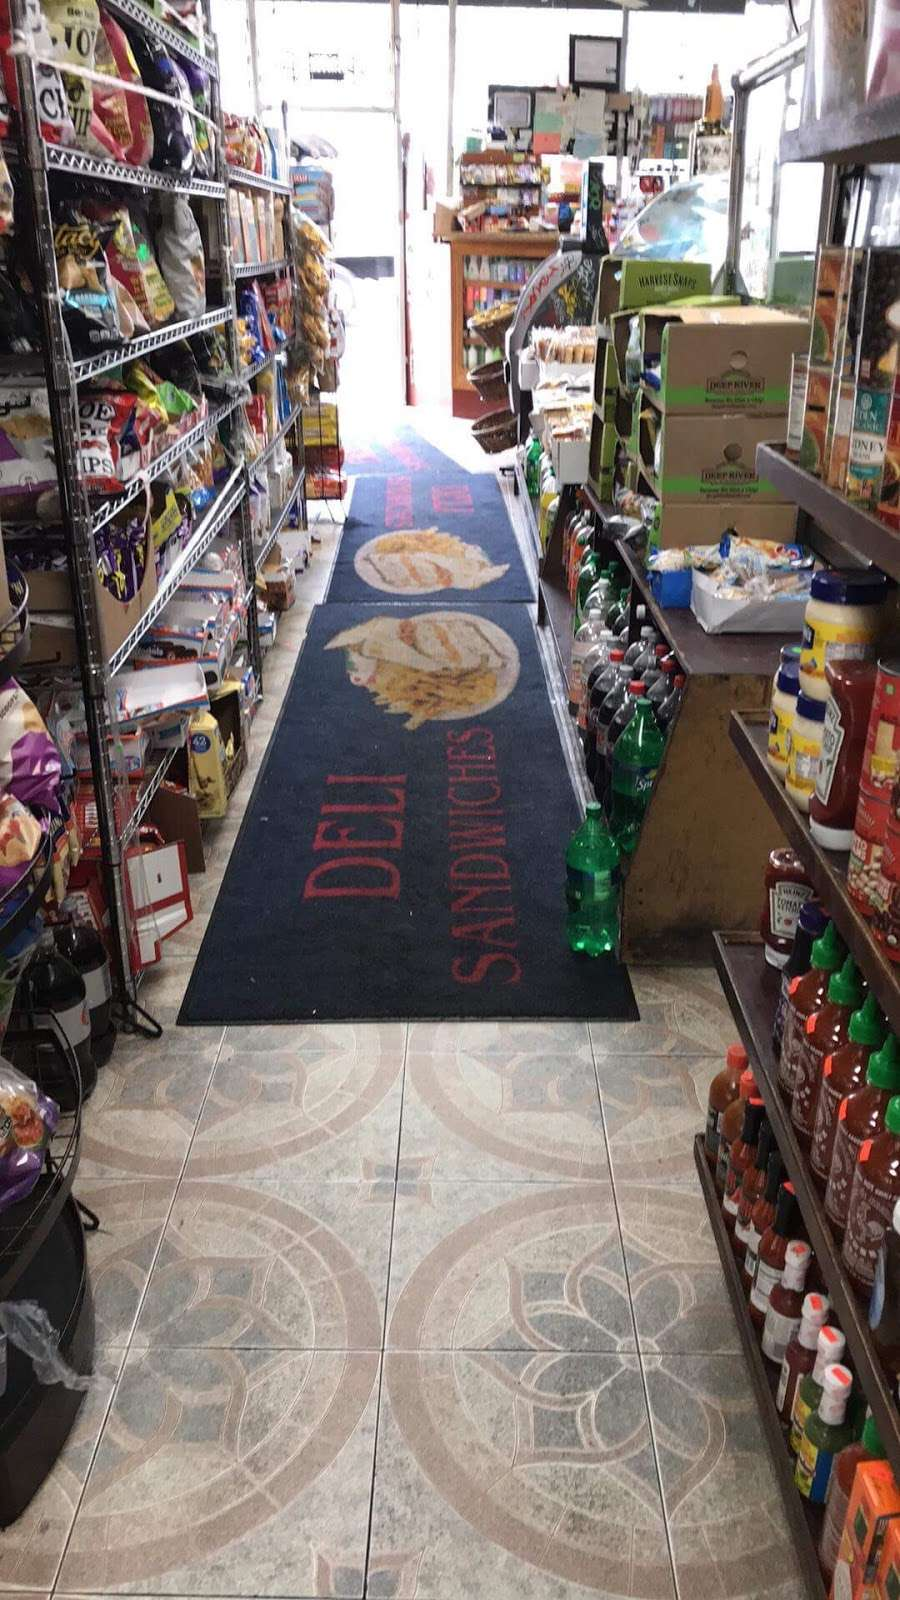 Best Deli Grocery Grill - store  | Photo 1 of 4 | Address: 671 Bushwick Ave, Brooklyn, NY 11221, USA | Phone: (718) 455-0141